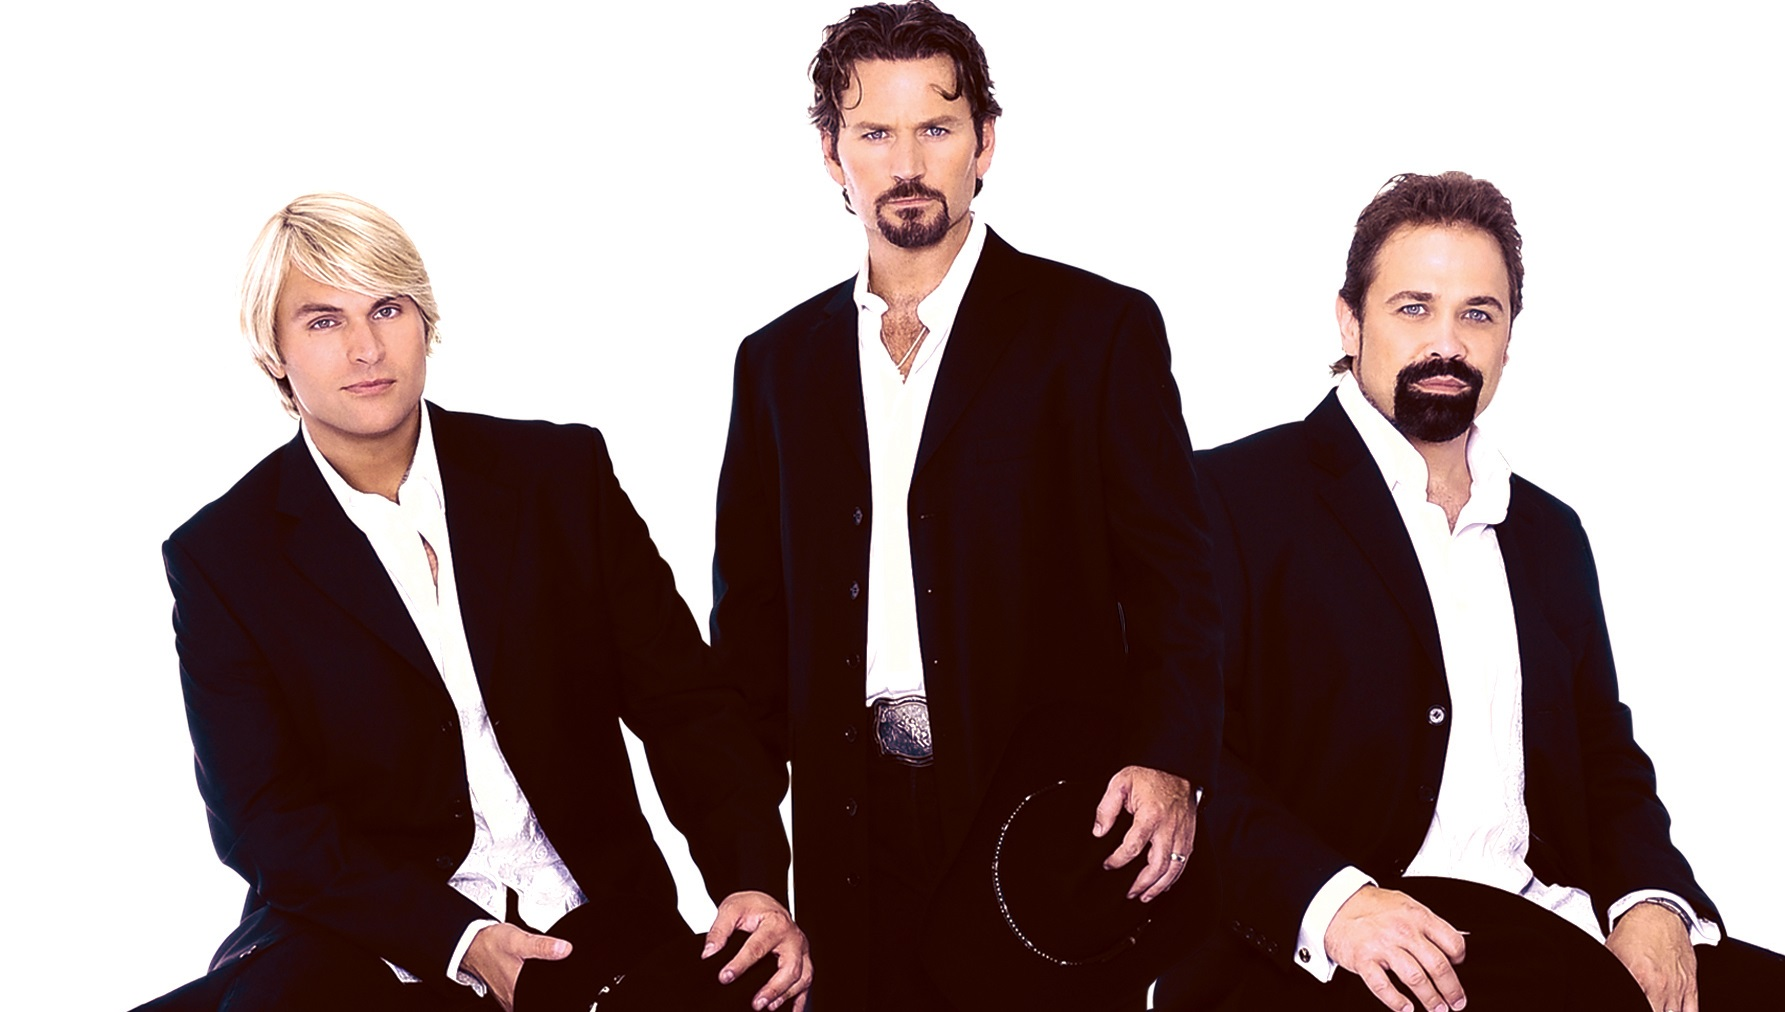 The Heart Of Christmas.The Texas Tenors Deep In The Heart Of Christmas Tucson Symphony Orchestra